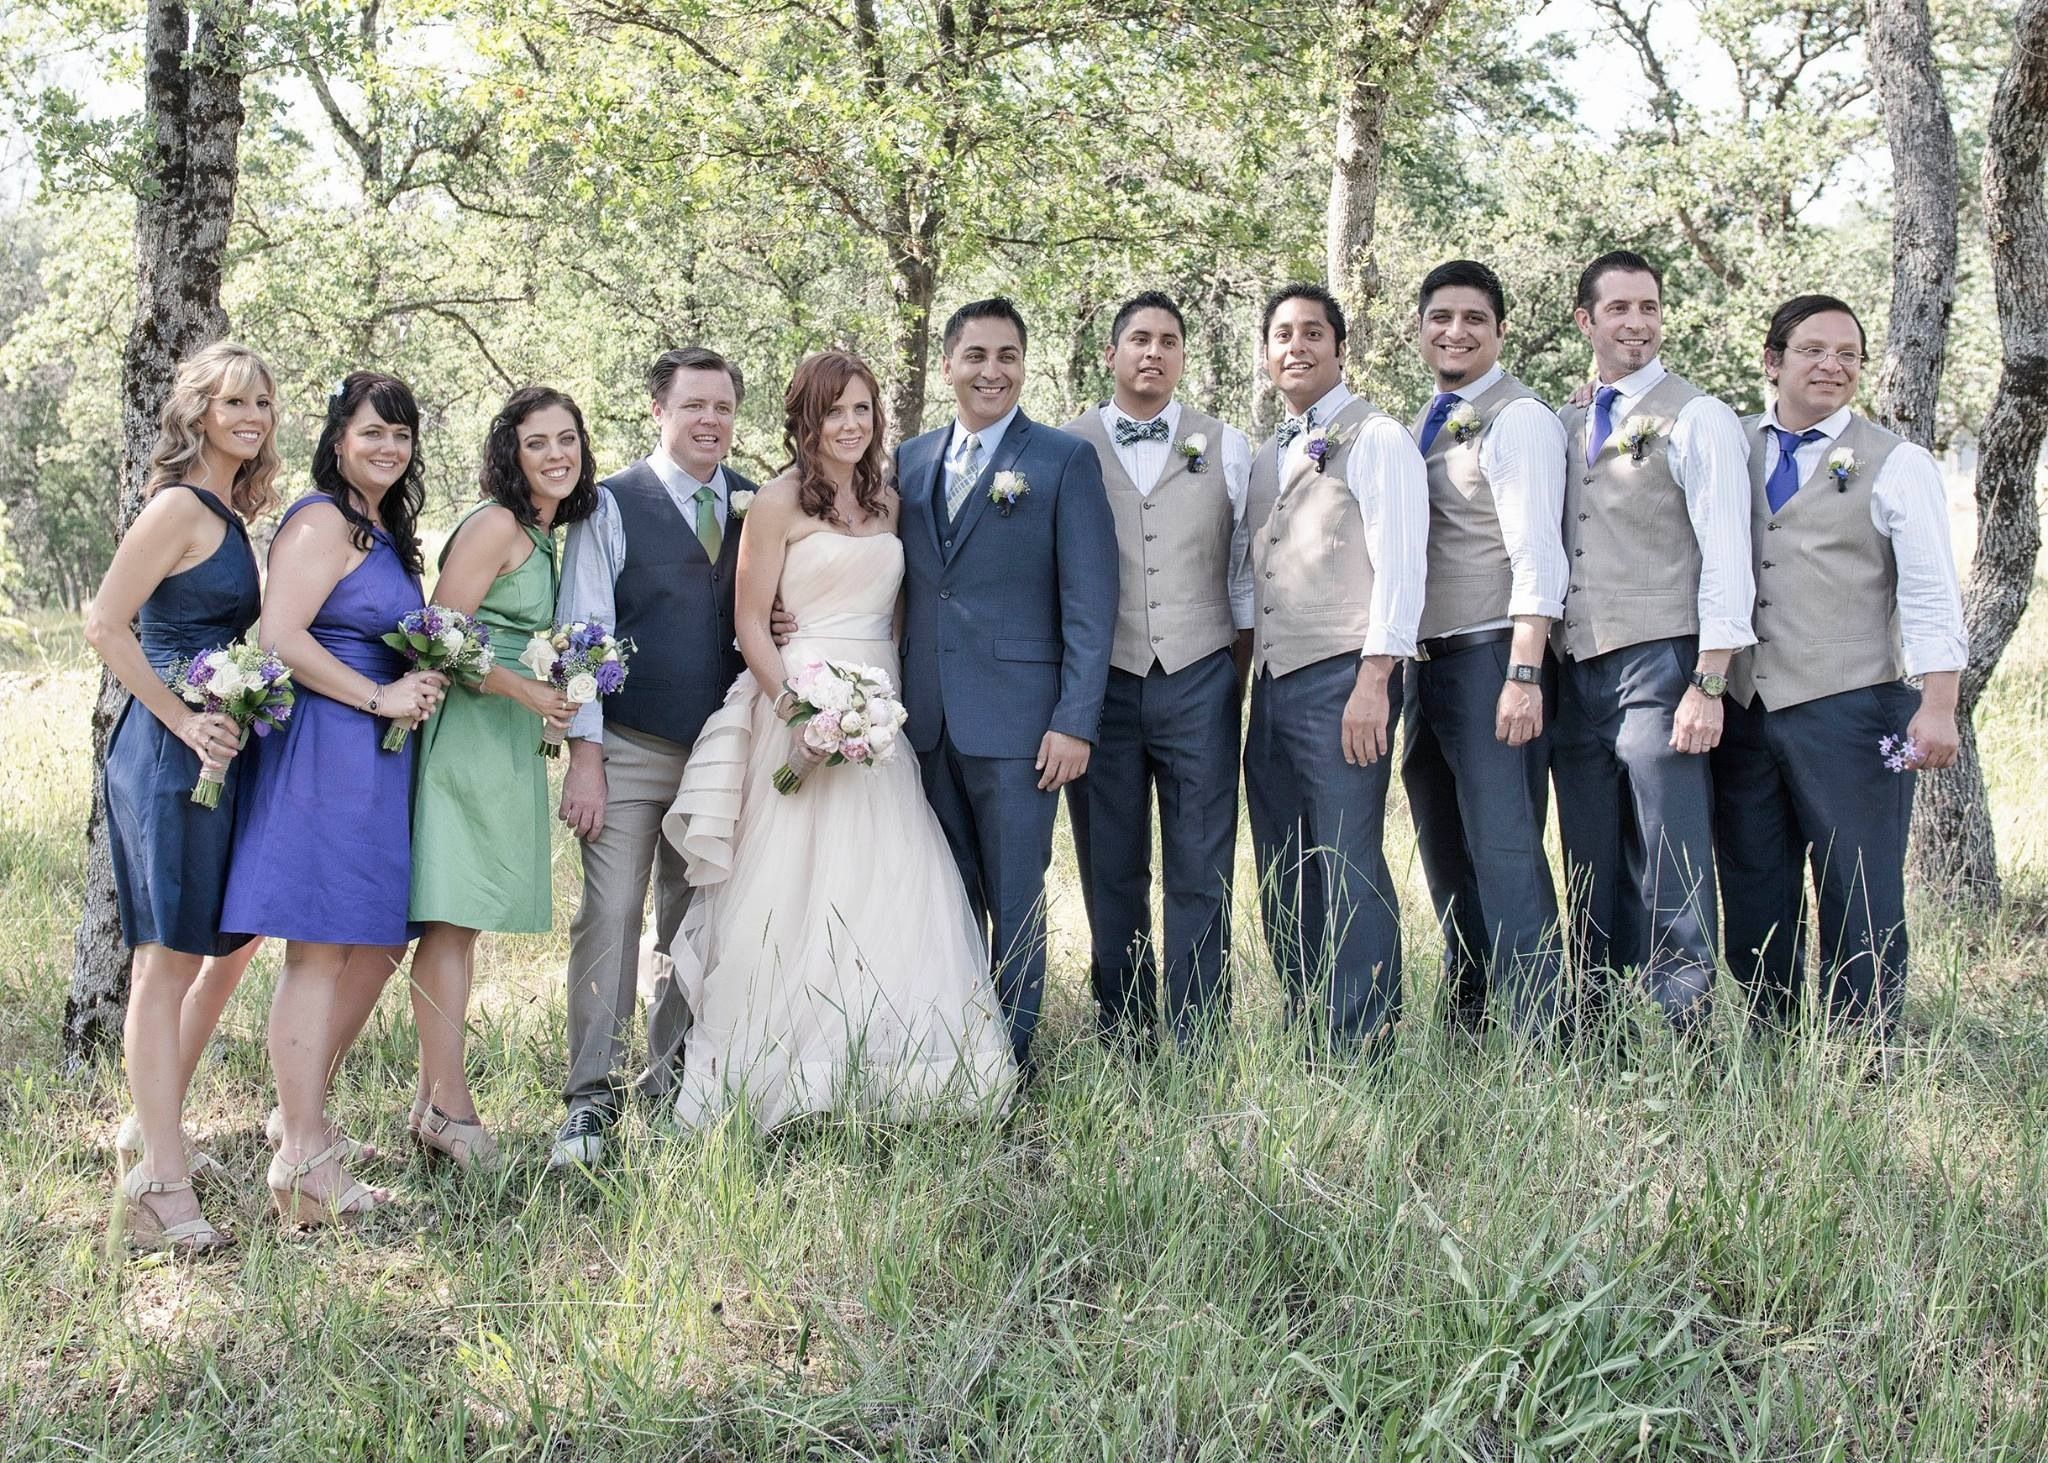 Bridal Party Man Of Honor Rustic Wedding Vintage Wedding Bridal Party Rustic Wedding